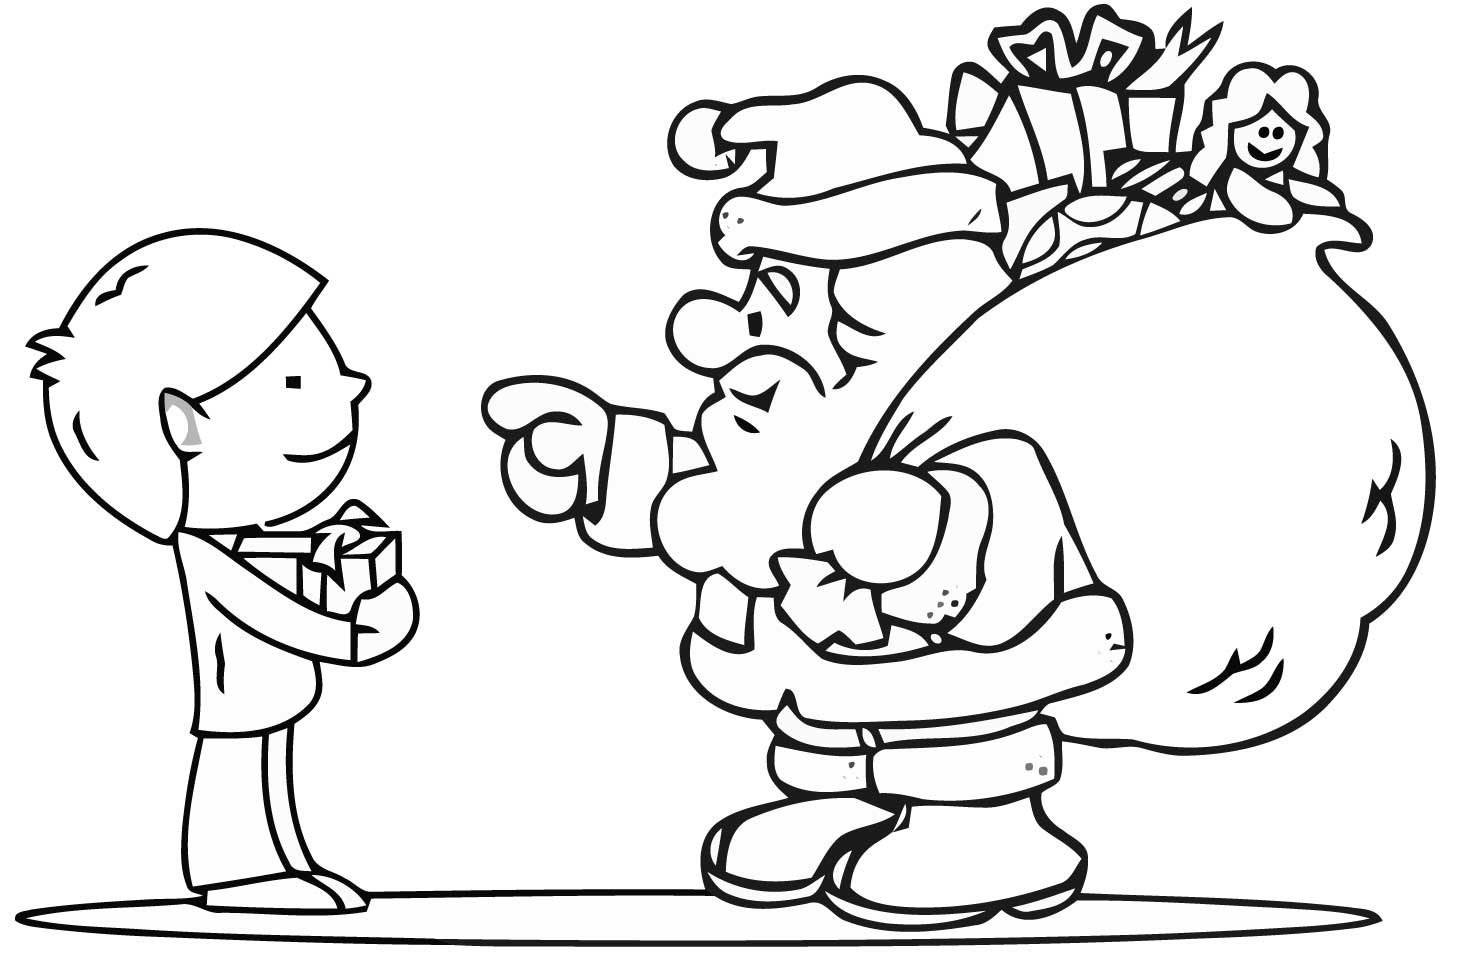 santa claus printable coloring pages santa claus coloring pages to download and print for free coloring claus pages printable santa